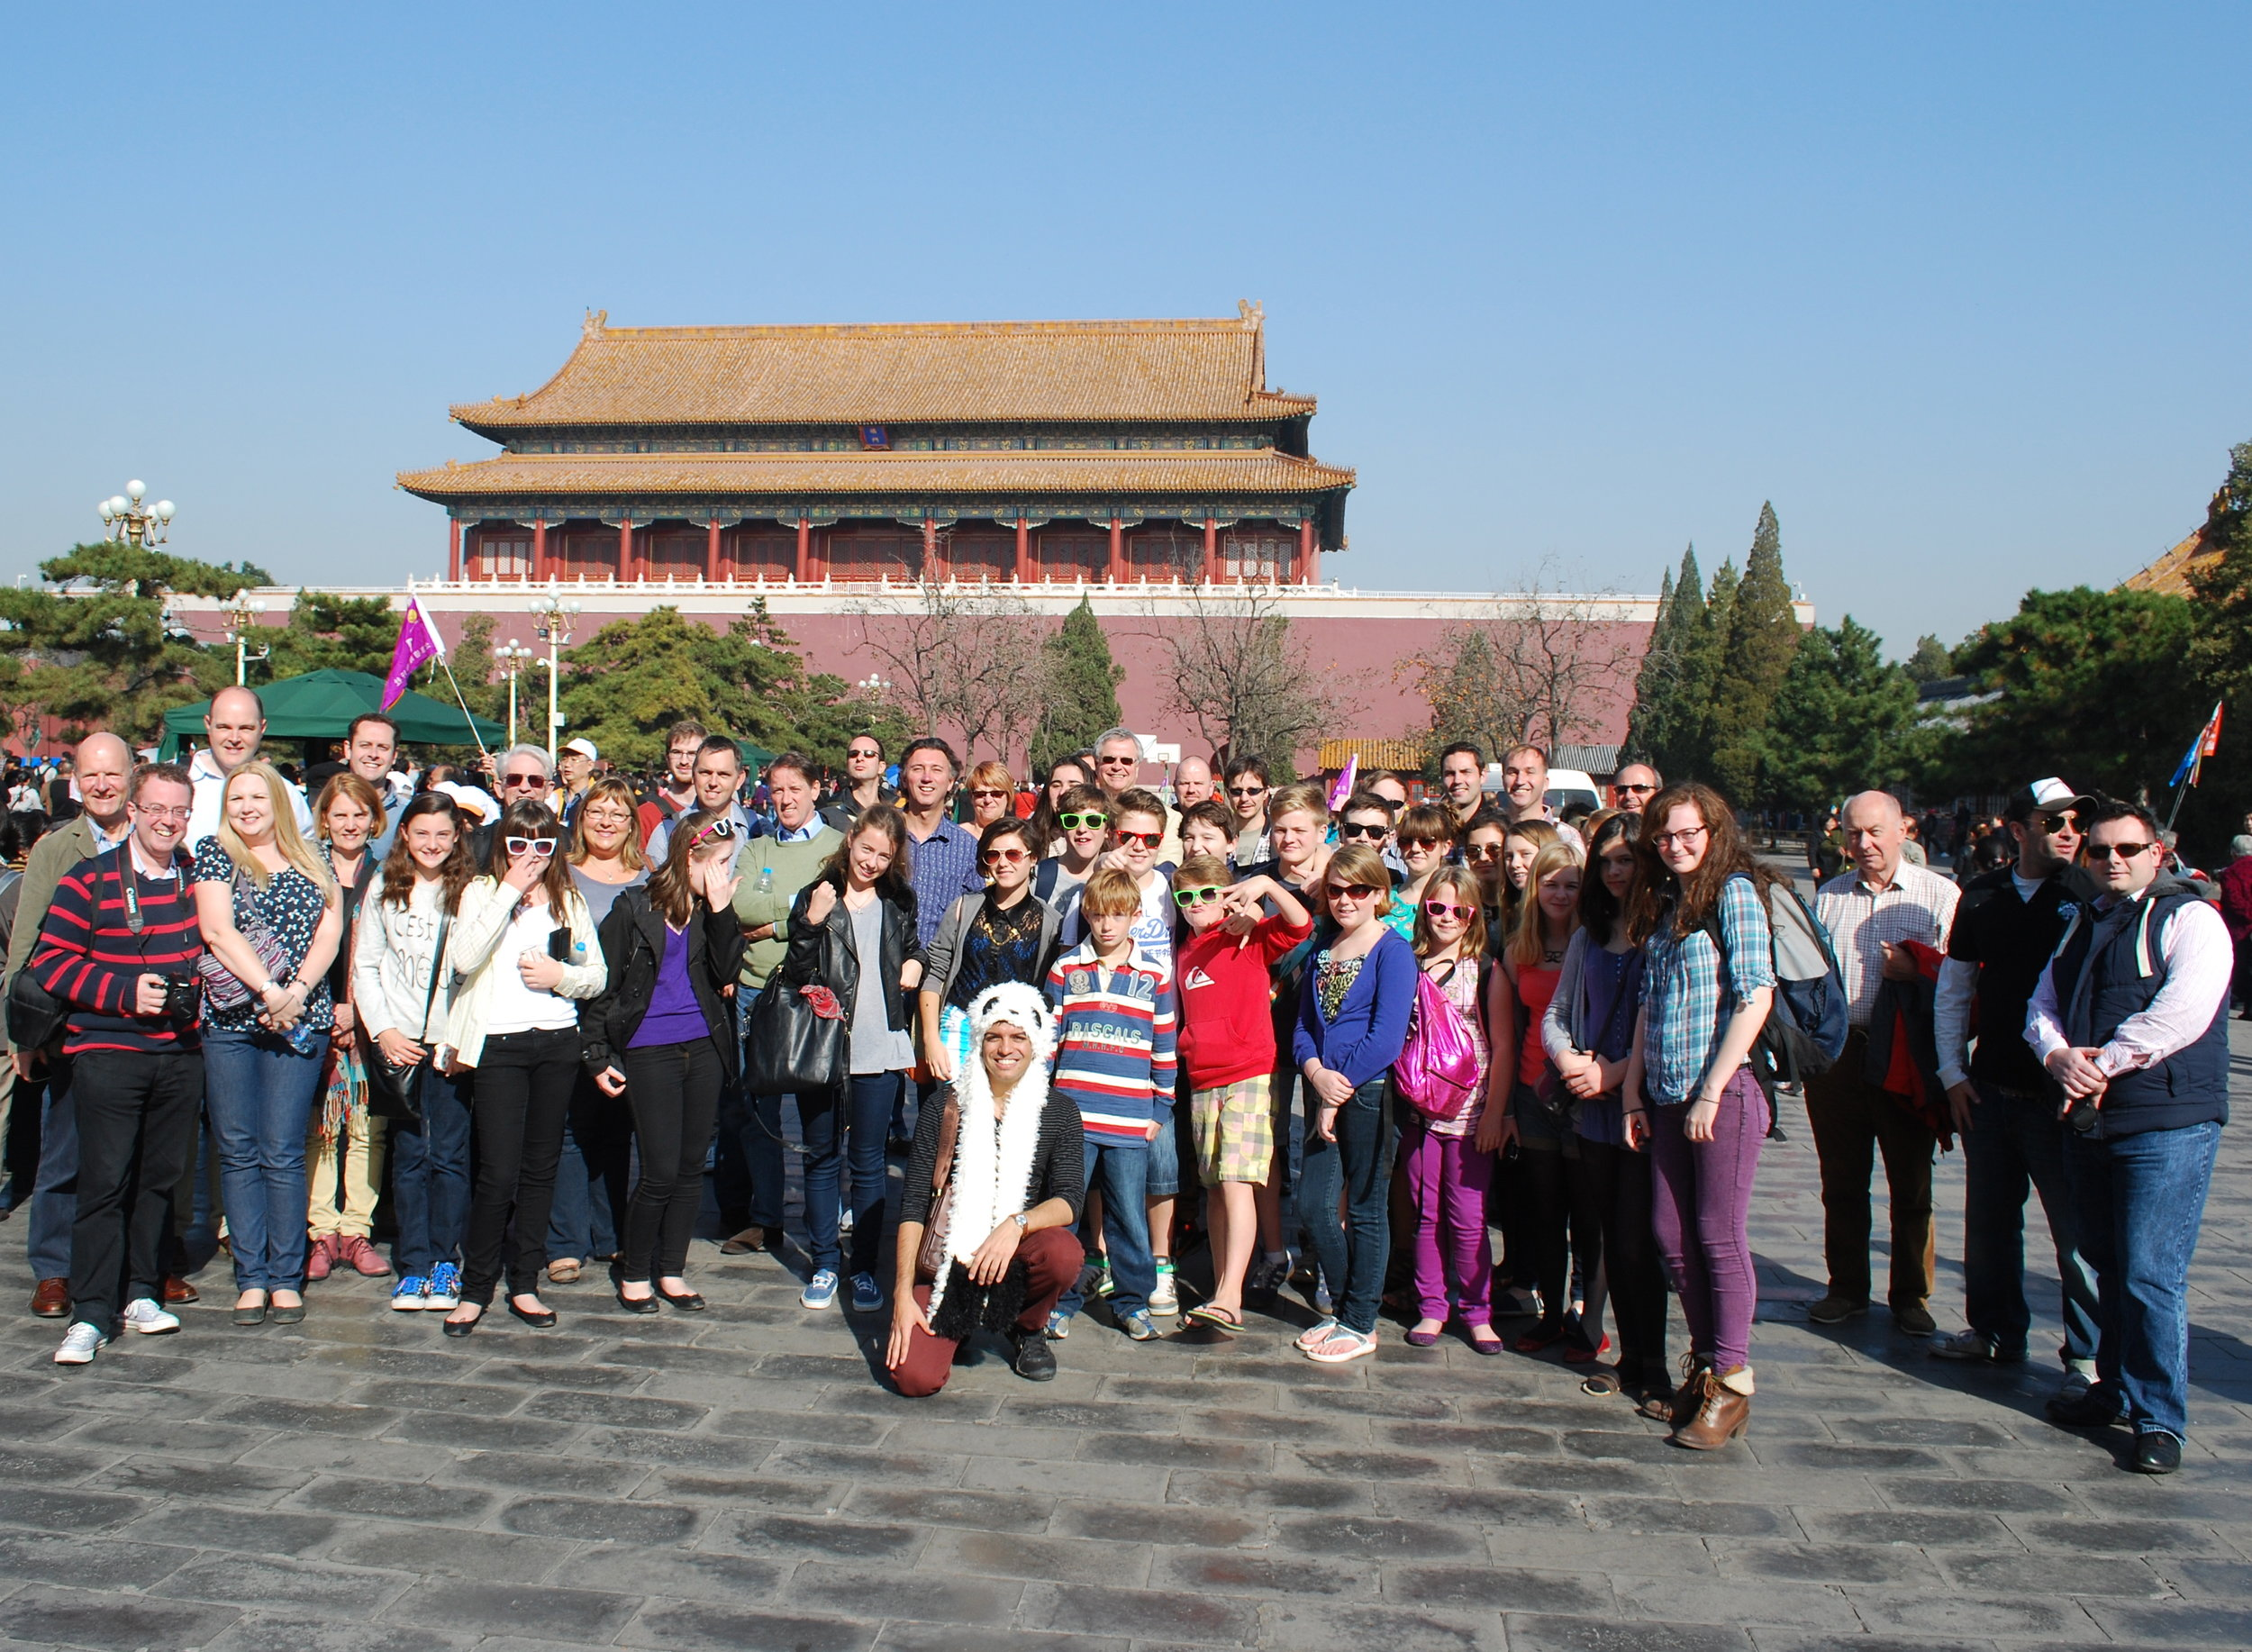 On tour - visiting the Forbidden City in Beijing